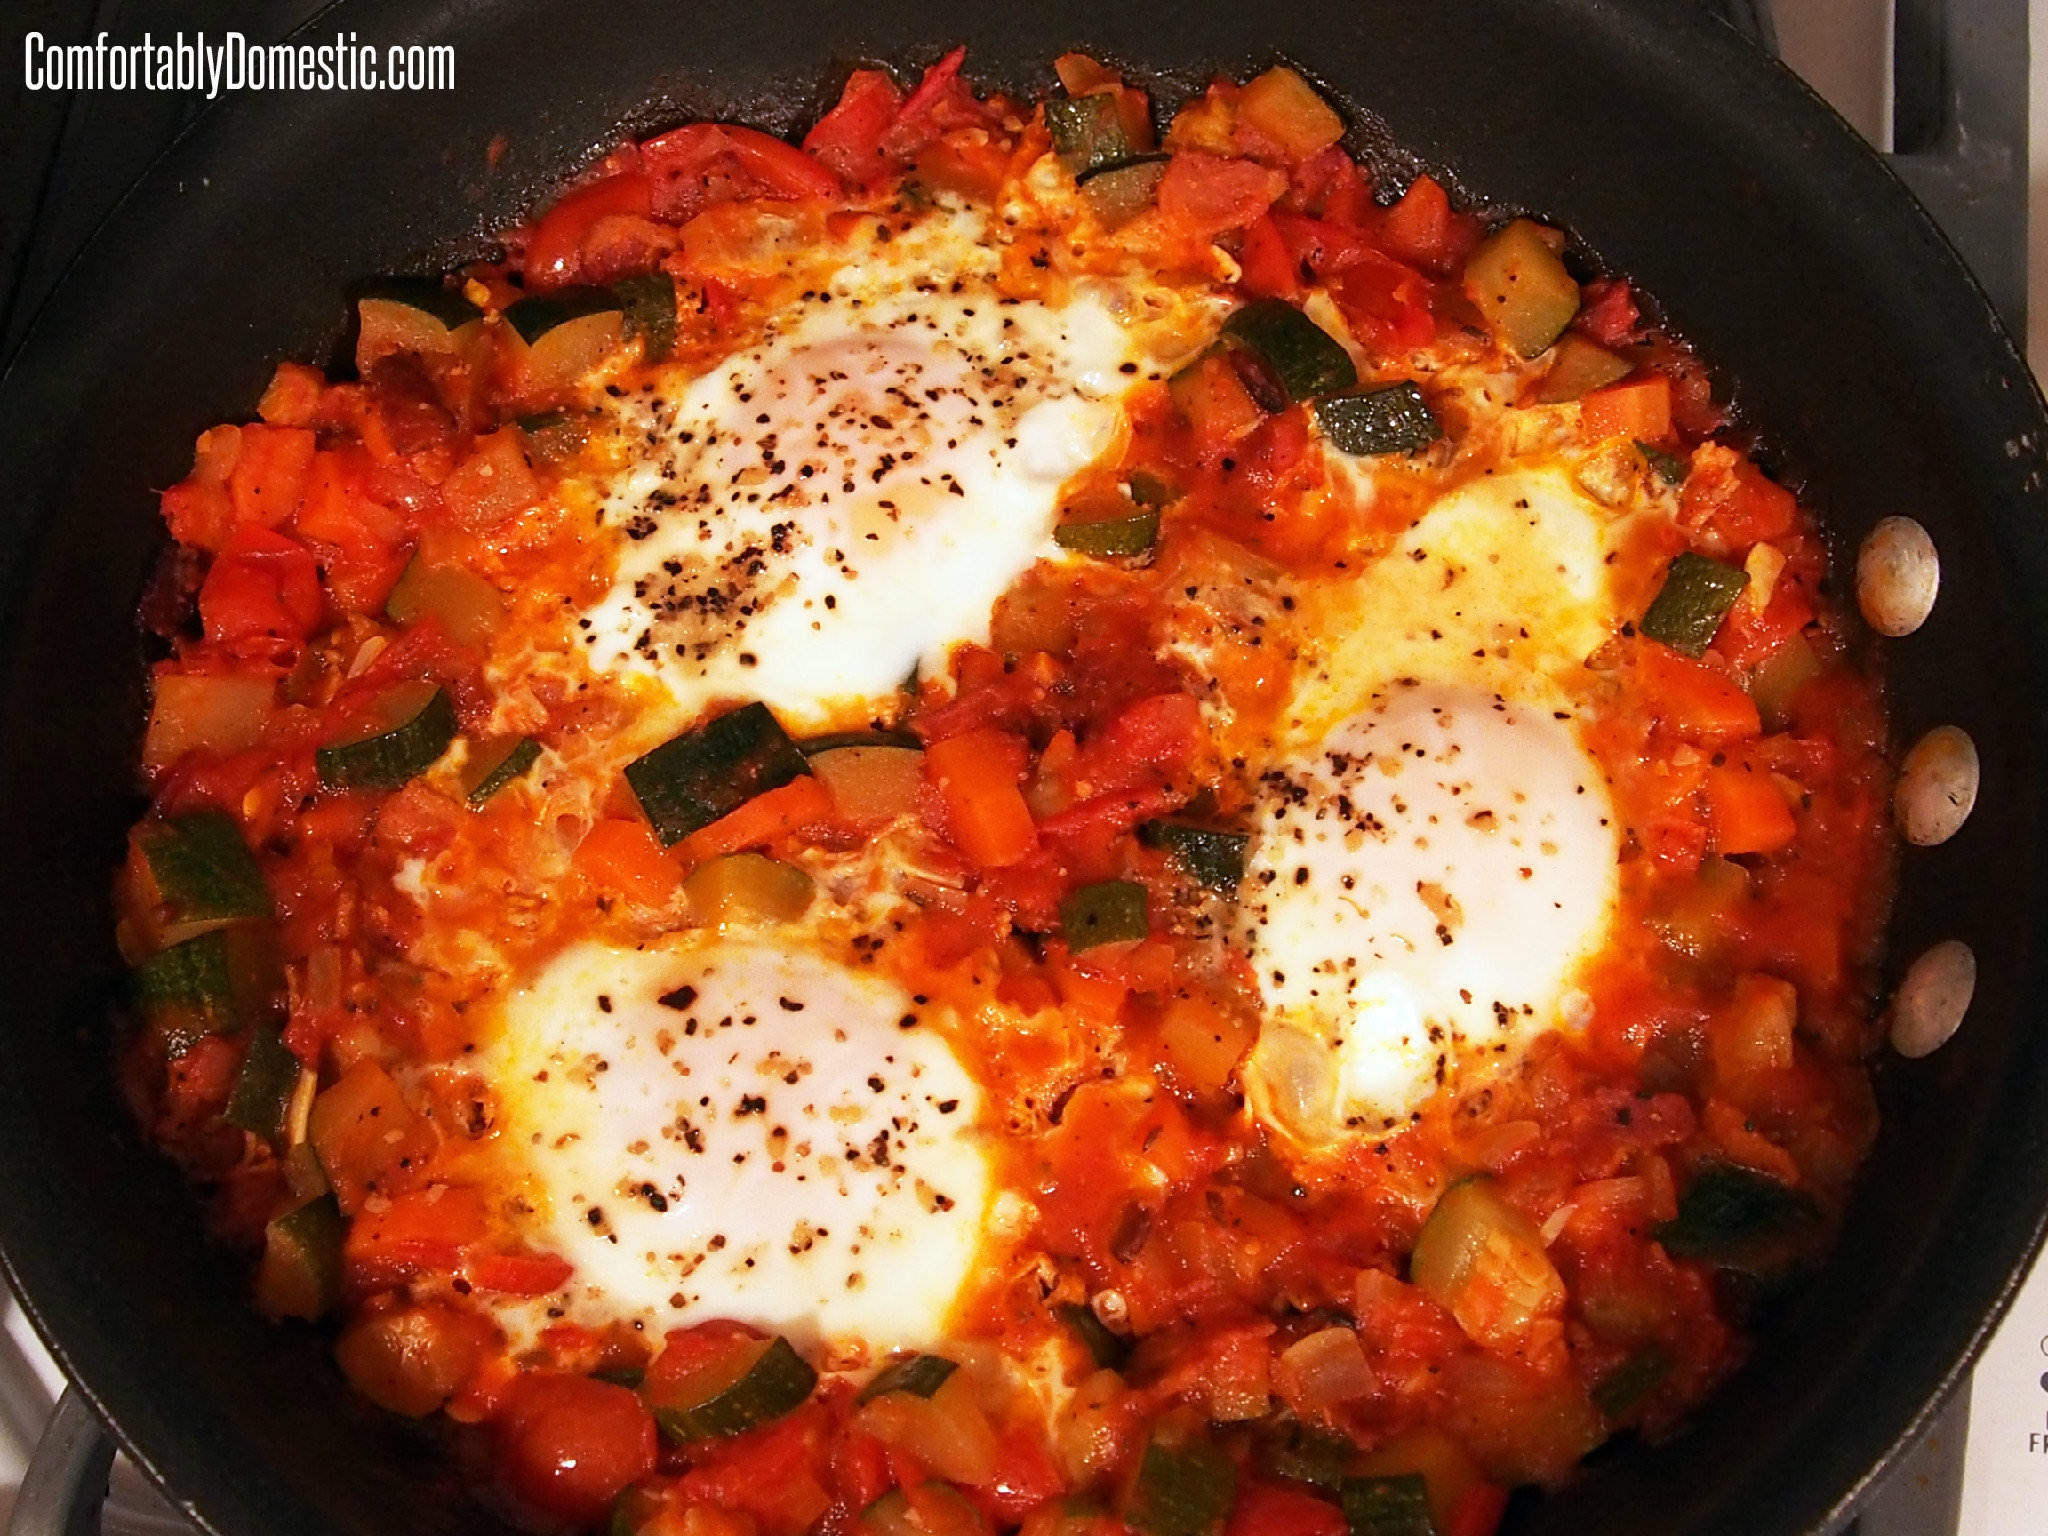 Leftover Ratatouille with Eggs | ComfortablyDomestic.com